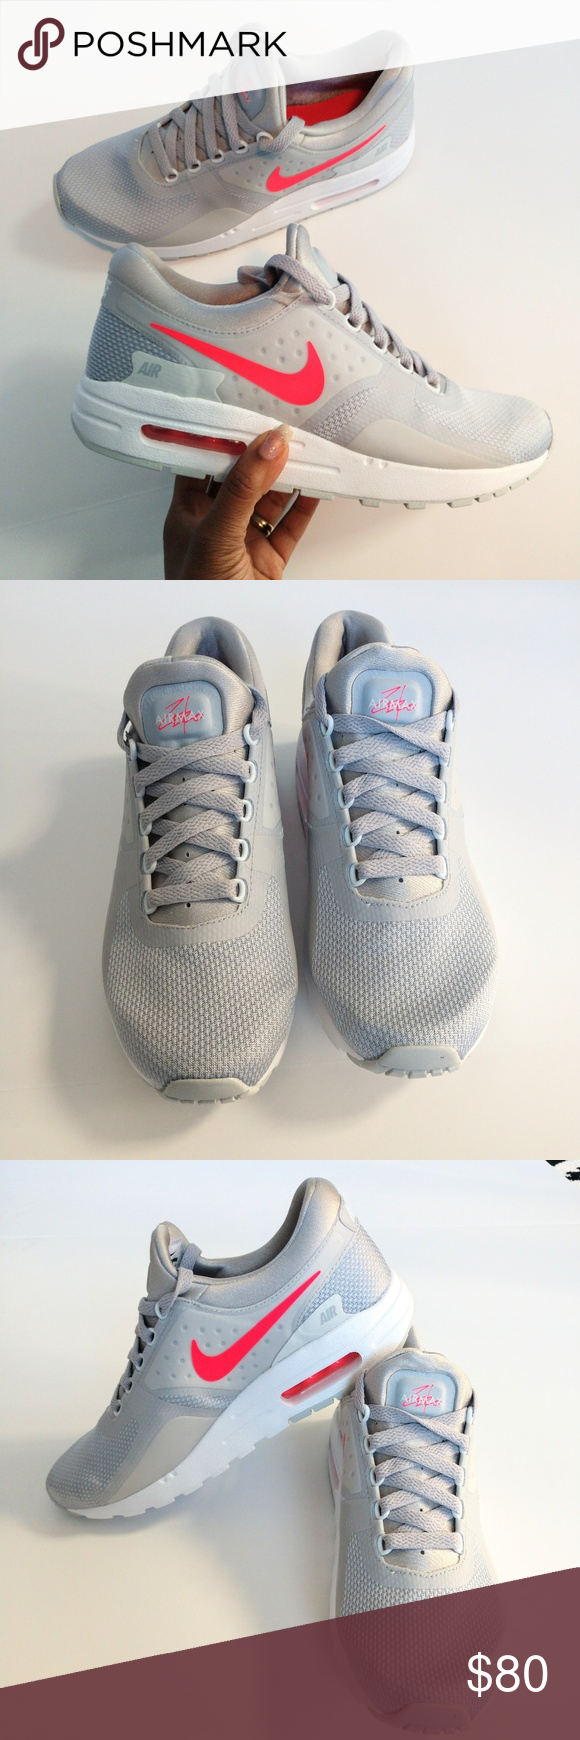 new product ed34d 70a9f NEW Nike Air Max Zero BRAND NEW W O tag   box. Size 7 youth   8.5 women  Color   cool gray   pink No rips, stains or tears Buy with confidence  100%  ...